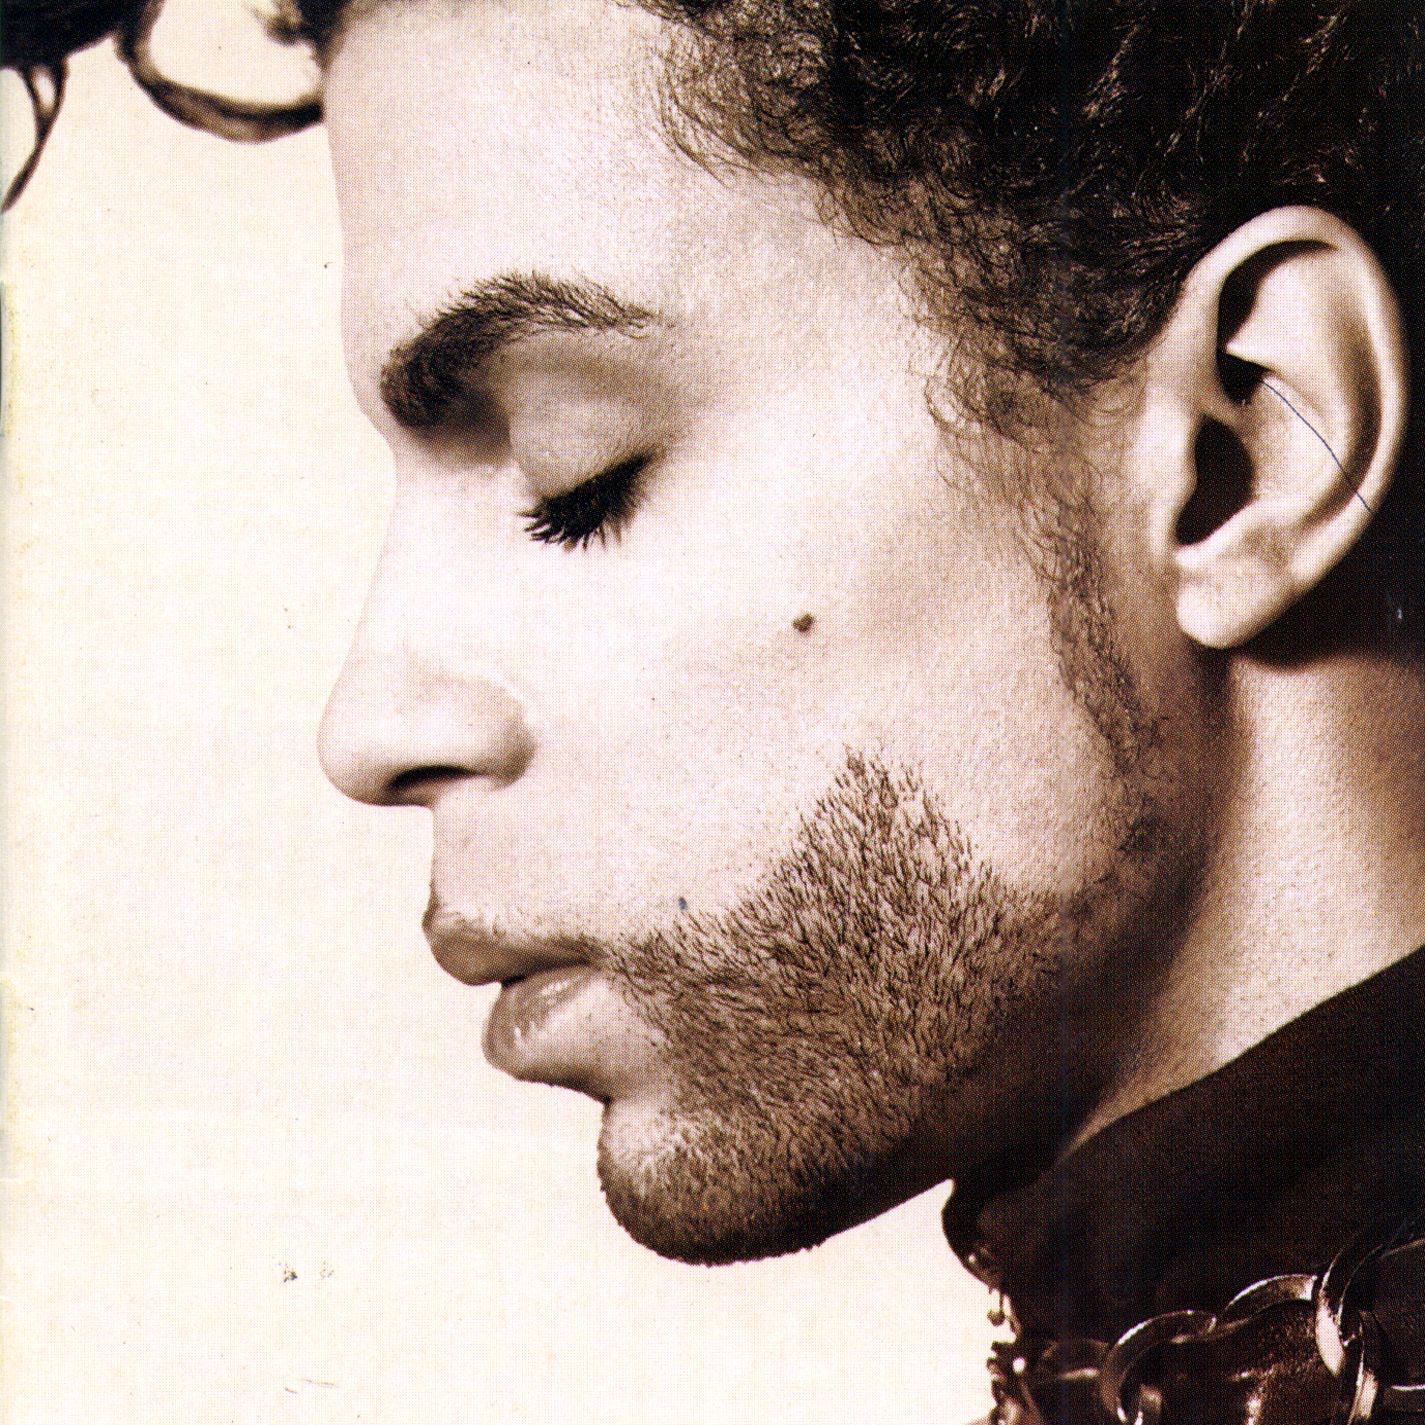 Art for 1999 by Prince